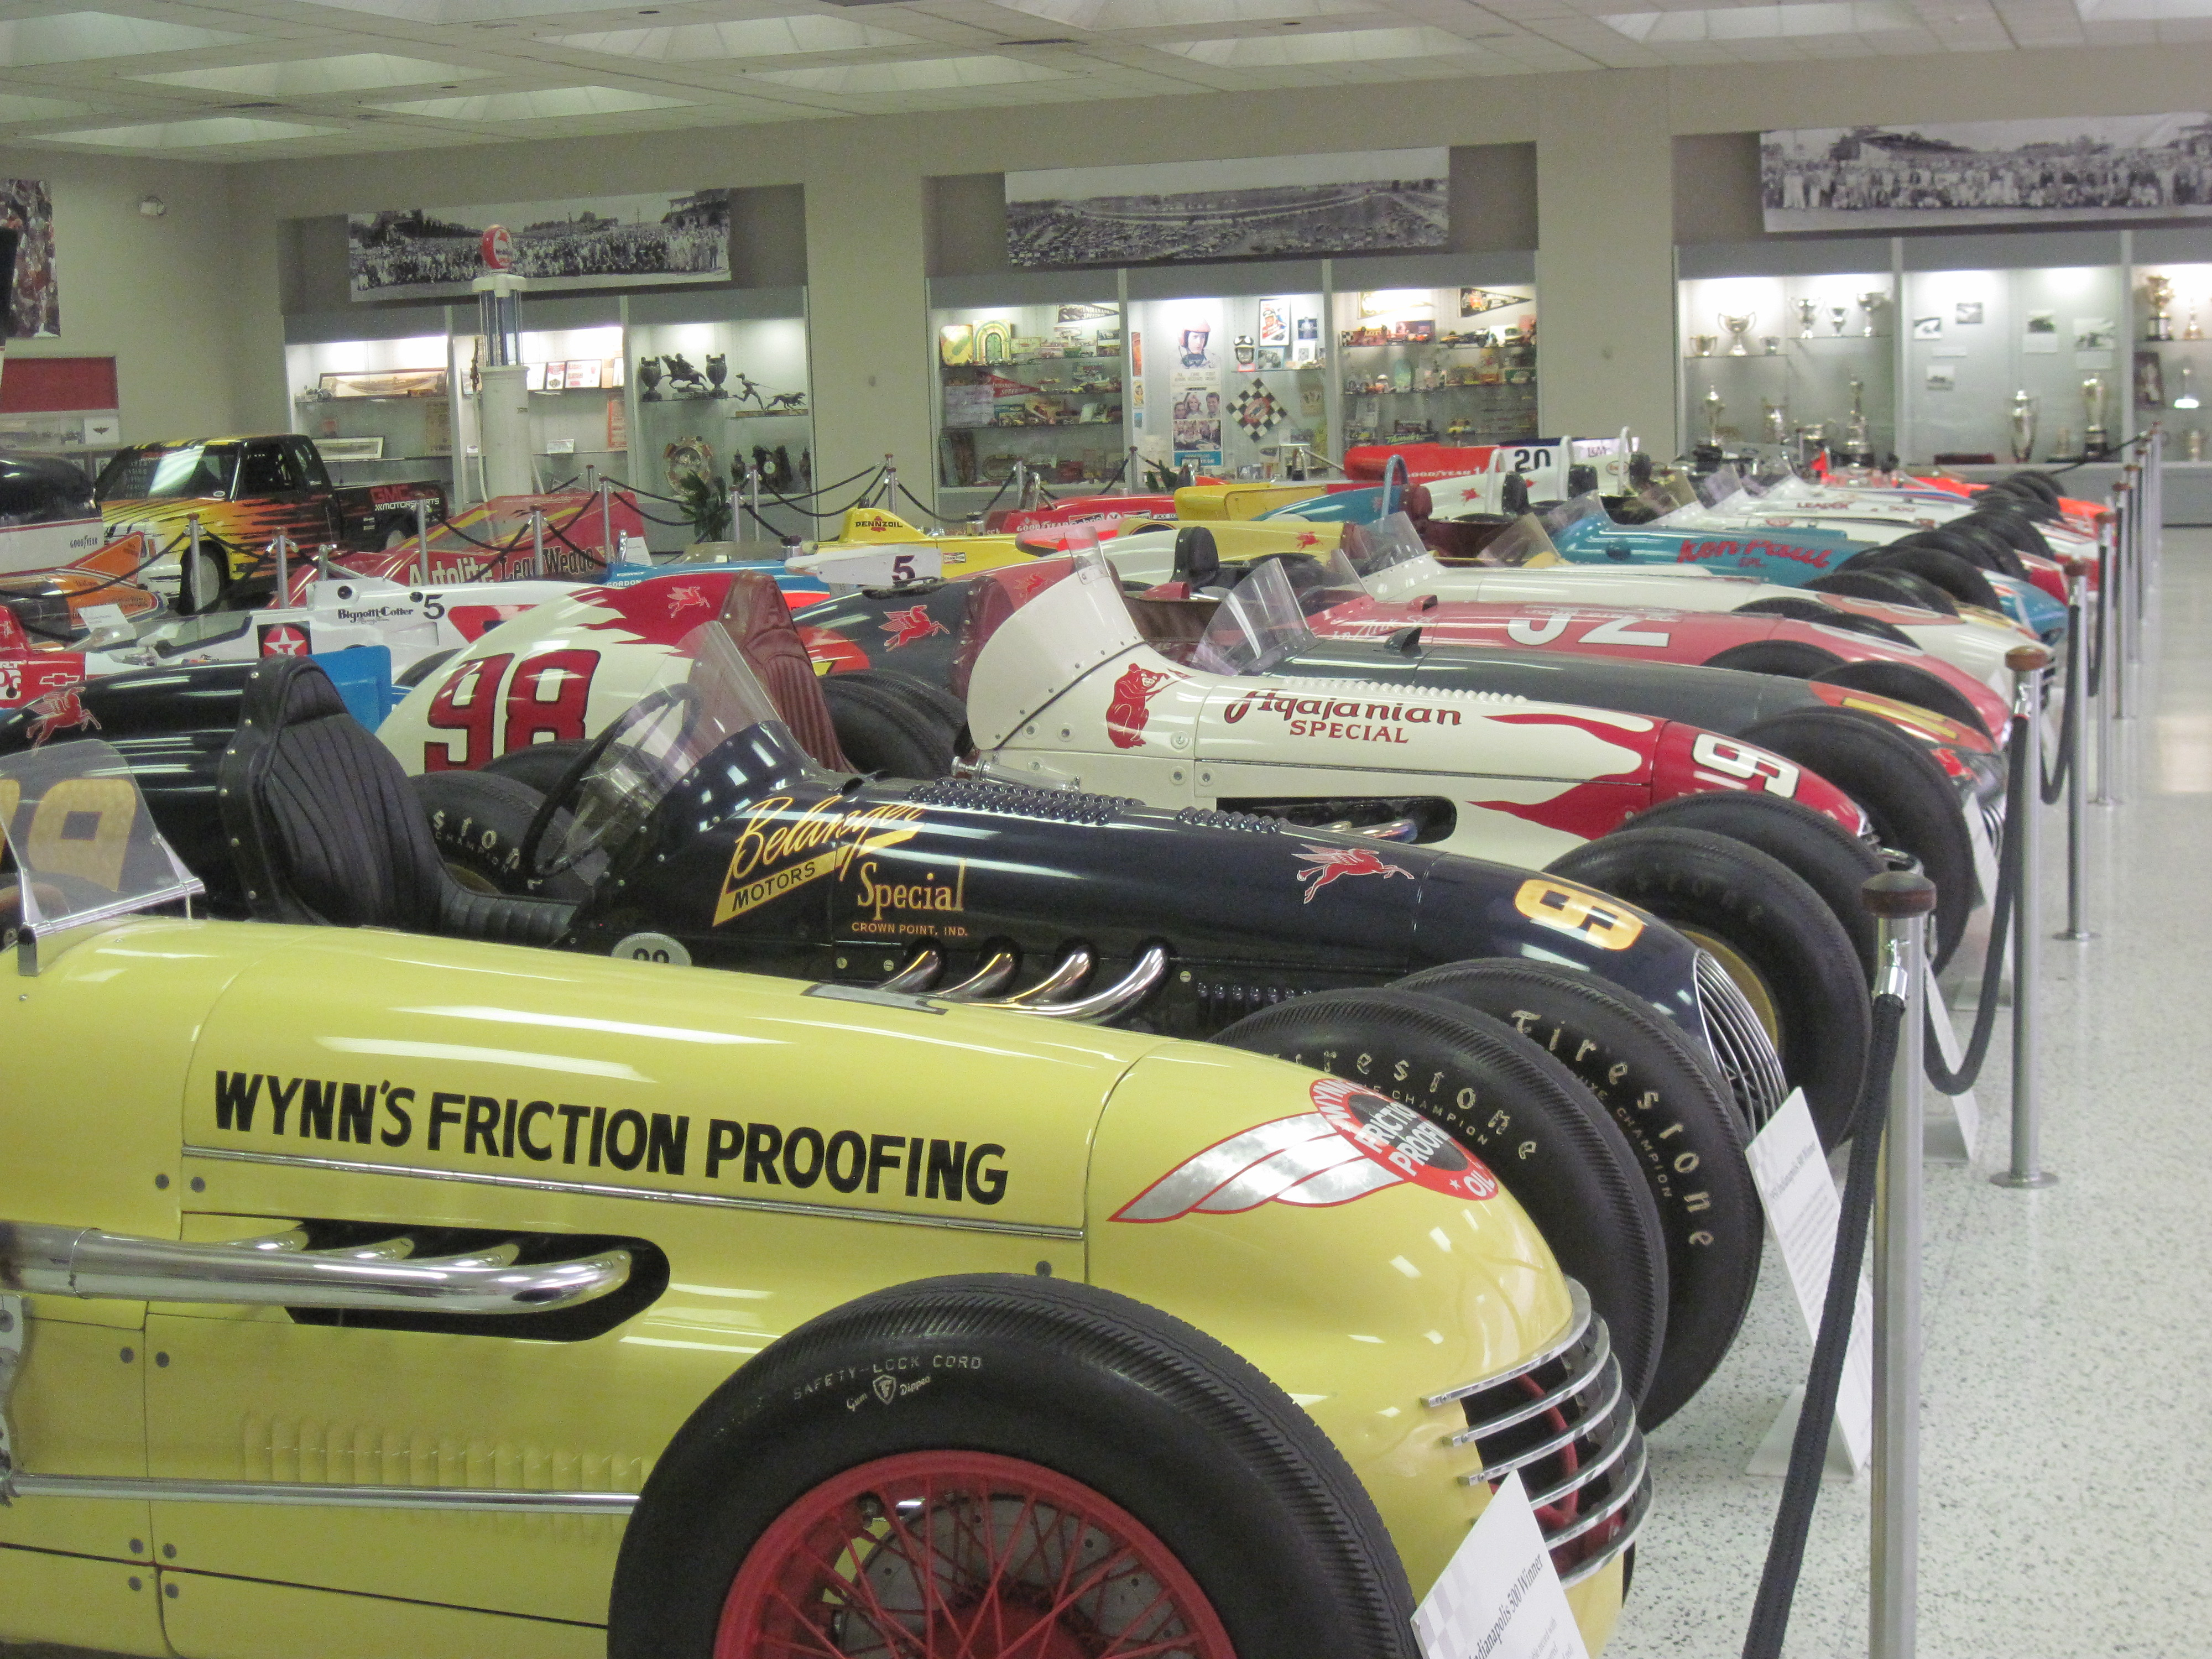 Cars galore at indianapolis motor speedway florida hikes for Indianapolis motor speedway clothing